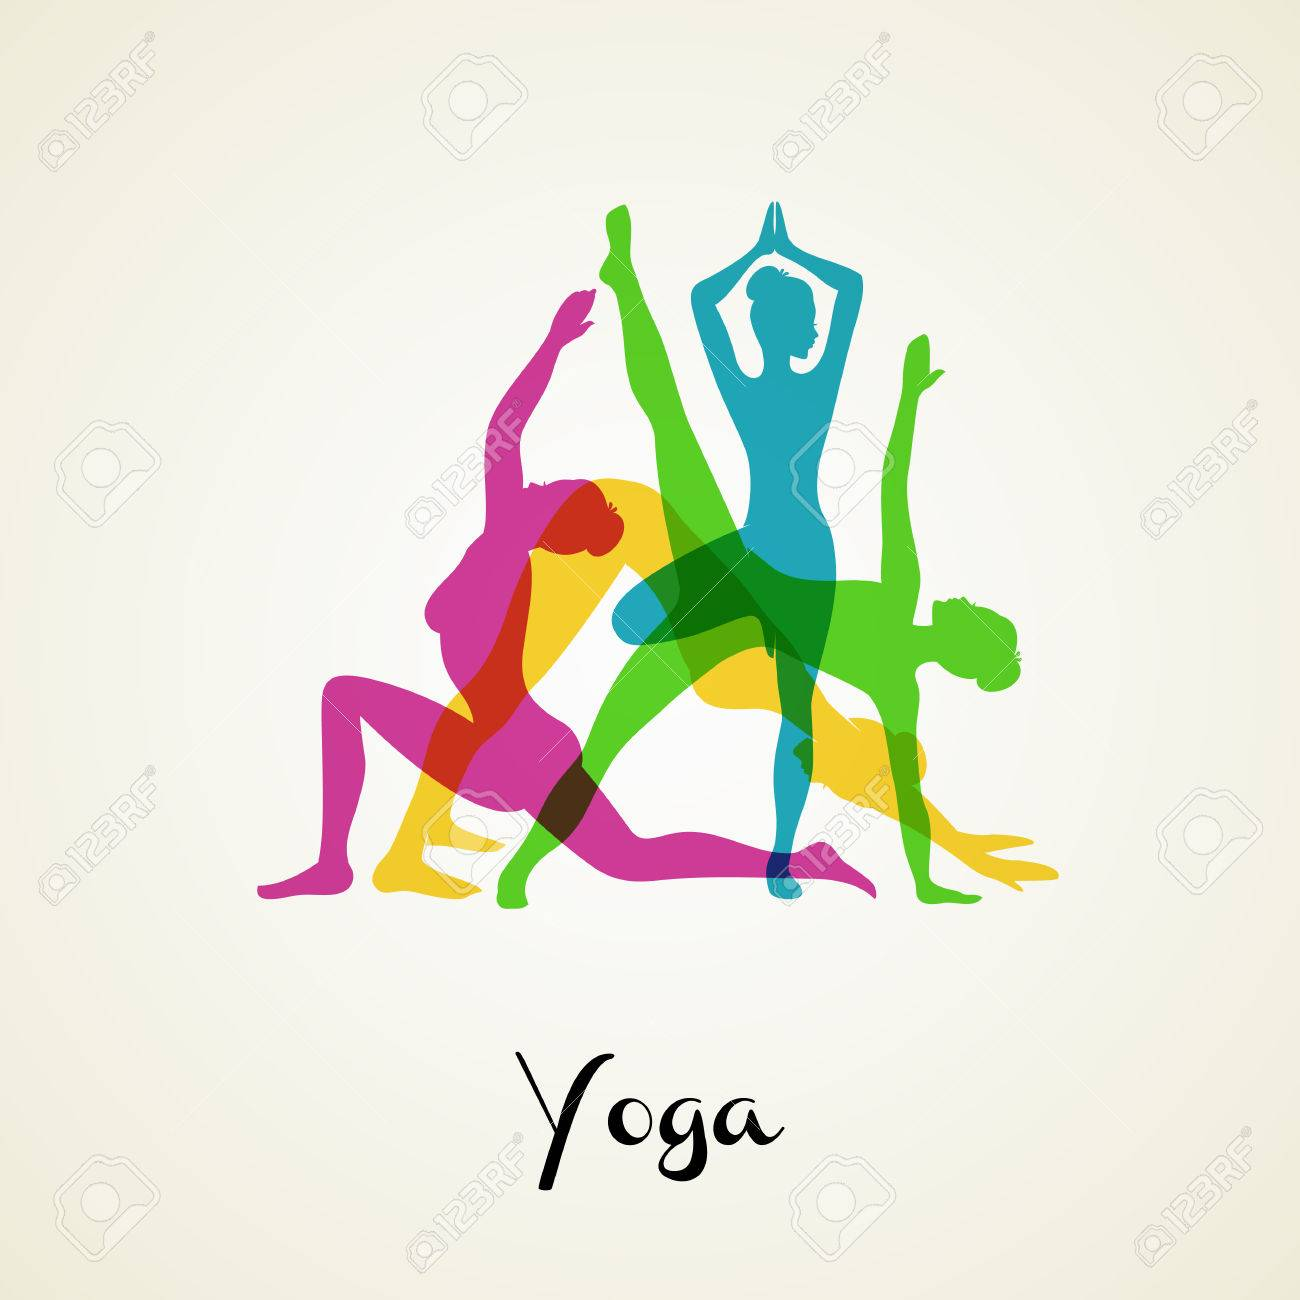 Vector illustration of Yoga poses silhouette set - 32814896